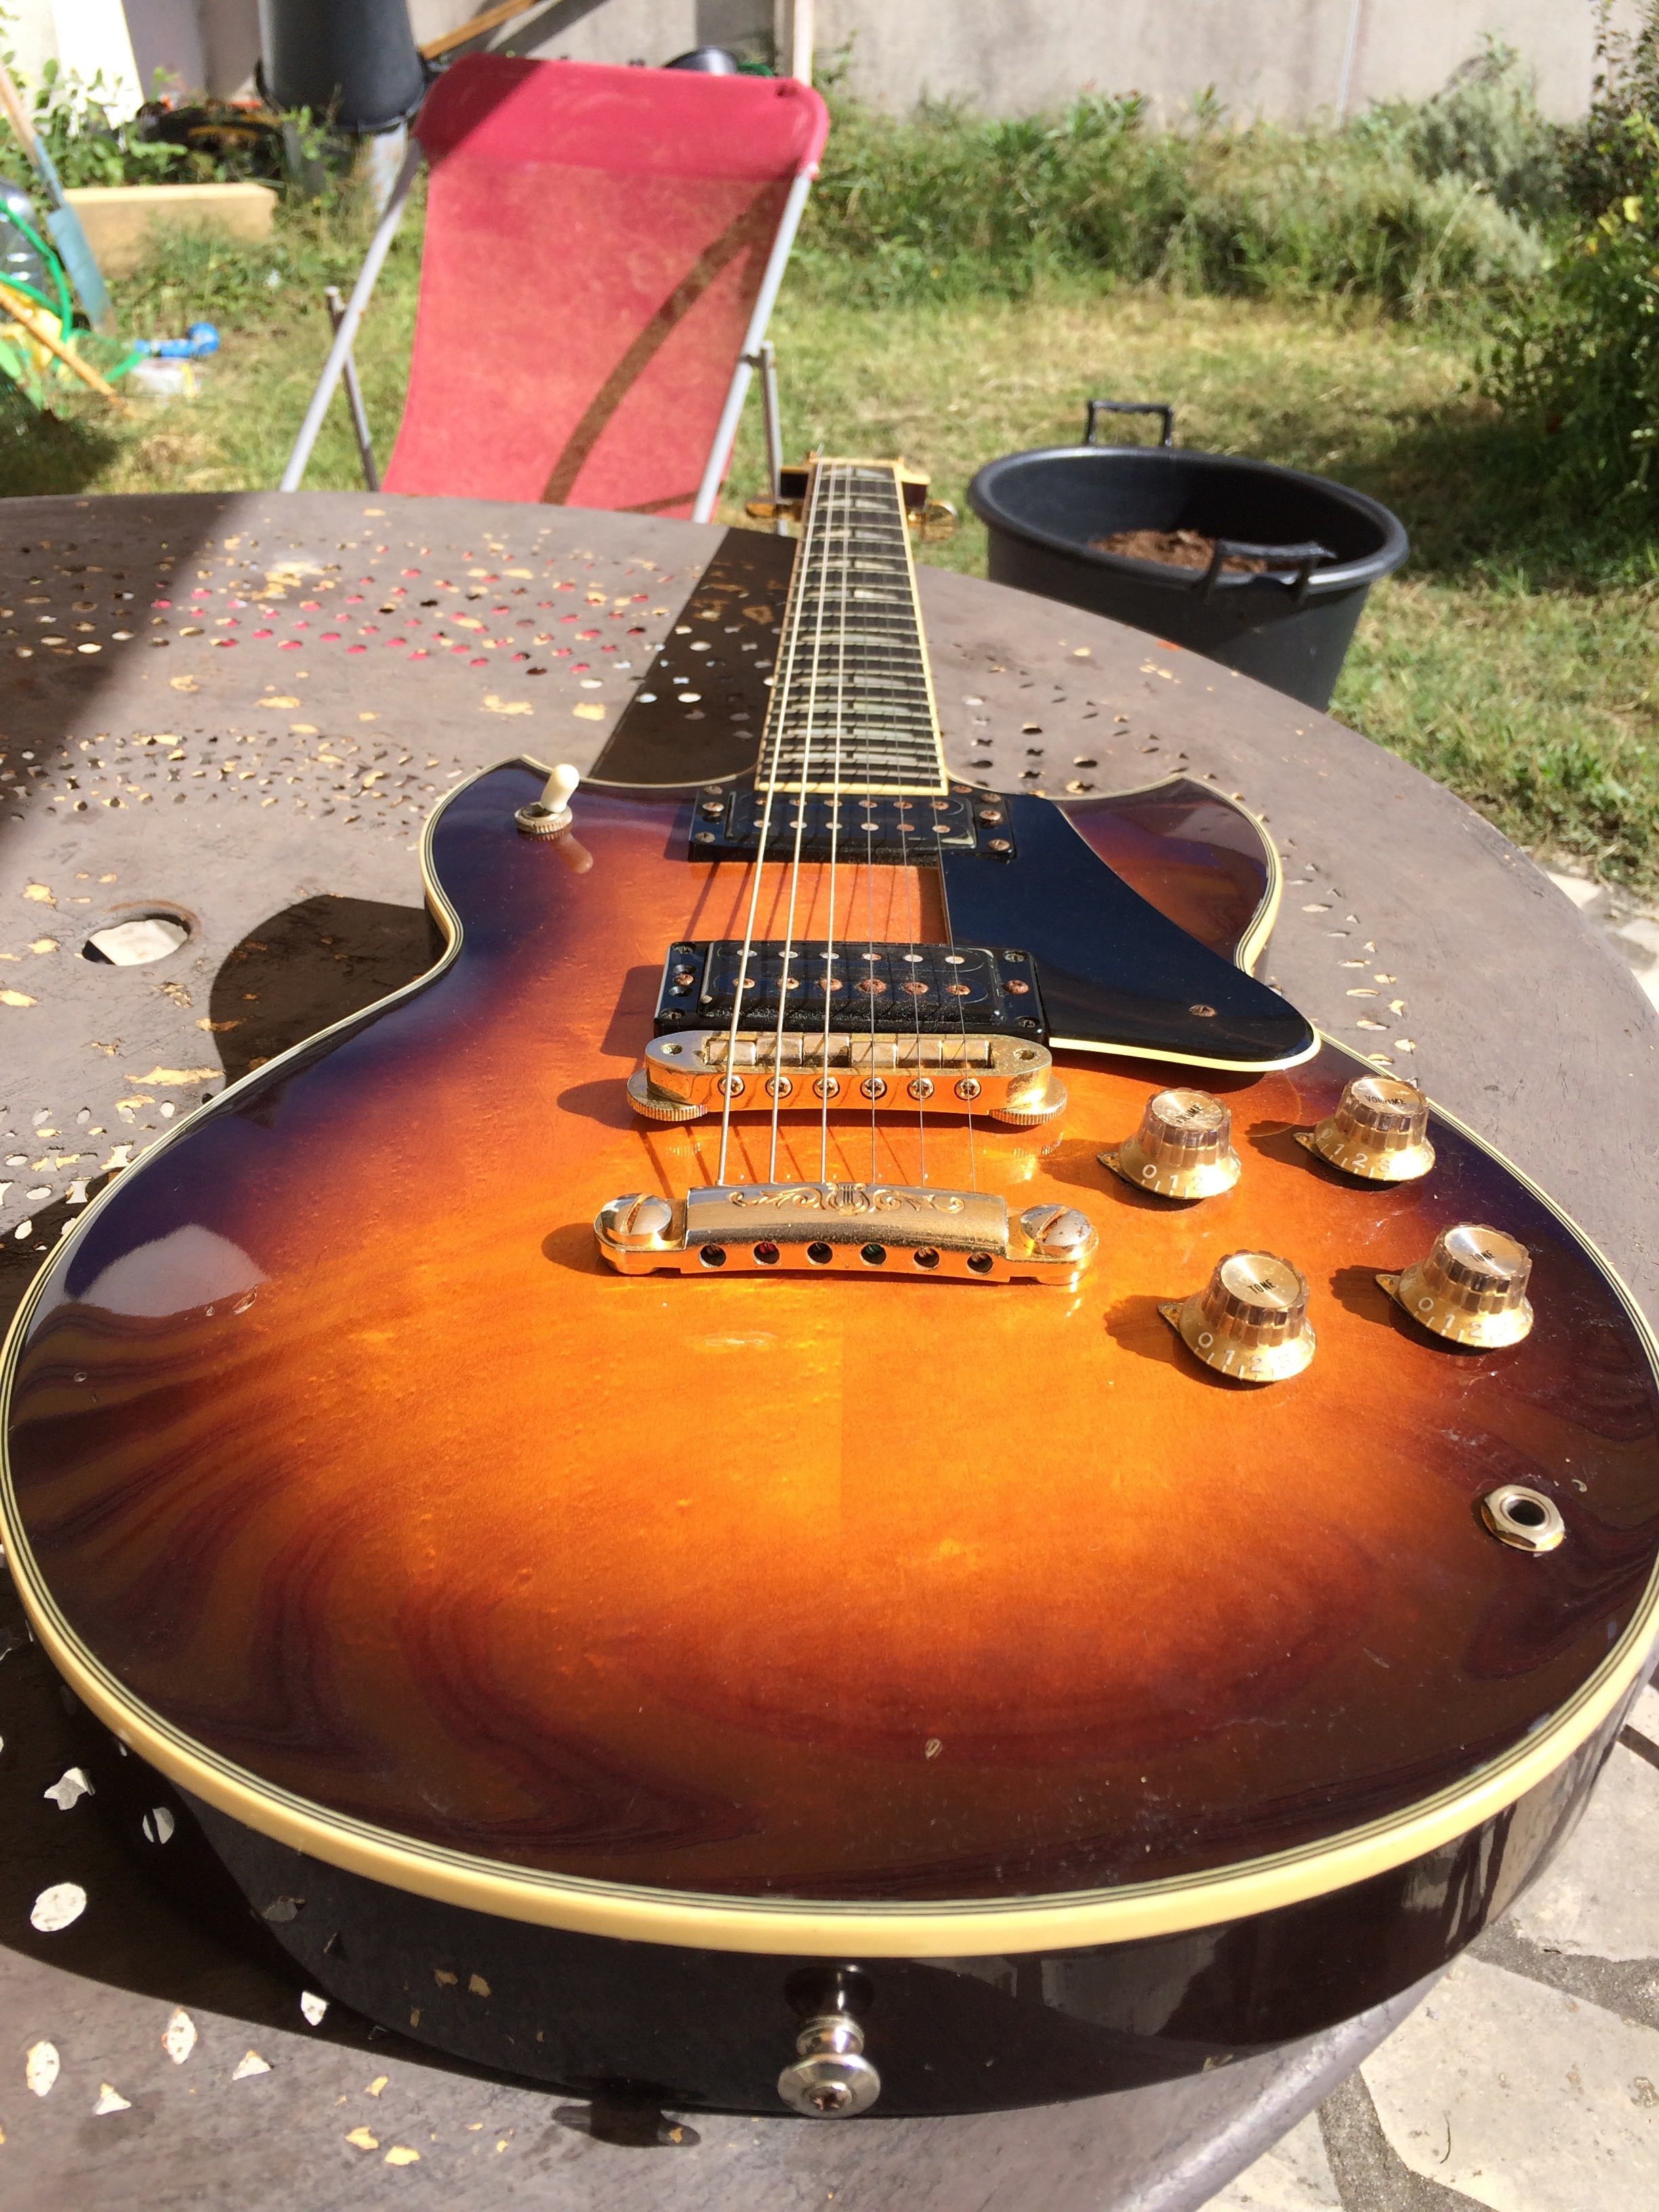 yamaha sg1000 dating Posts about yamaha sg-175 written by elite vintage there is no decorative floral motif inlay as common with the later sg-2000 and sg-1000, just the yamaha logo.